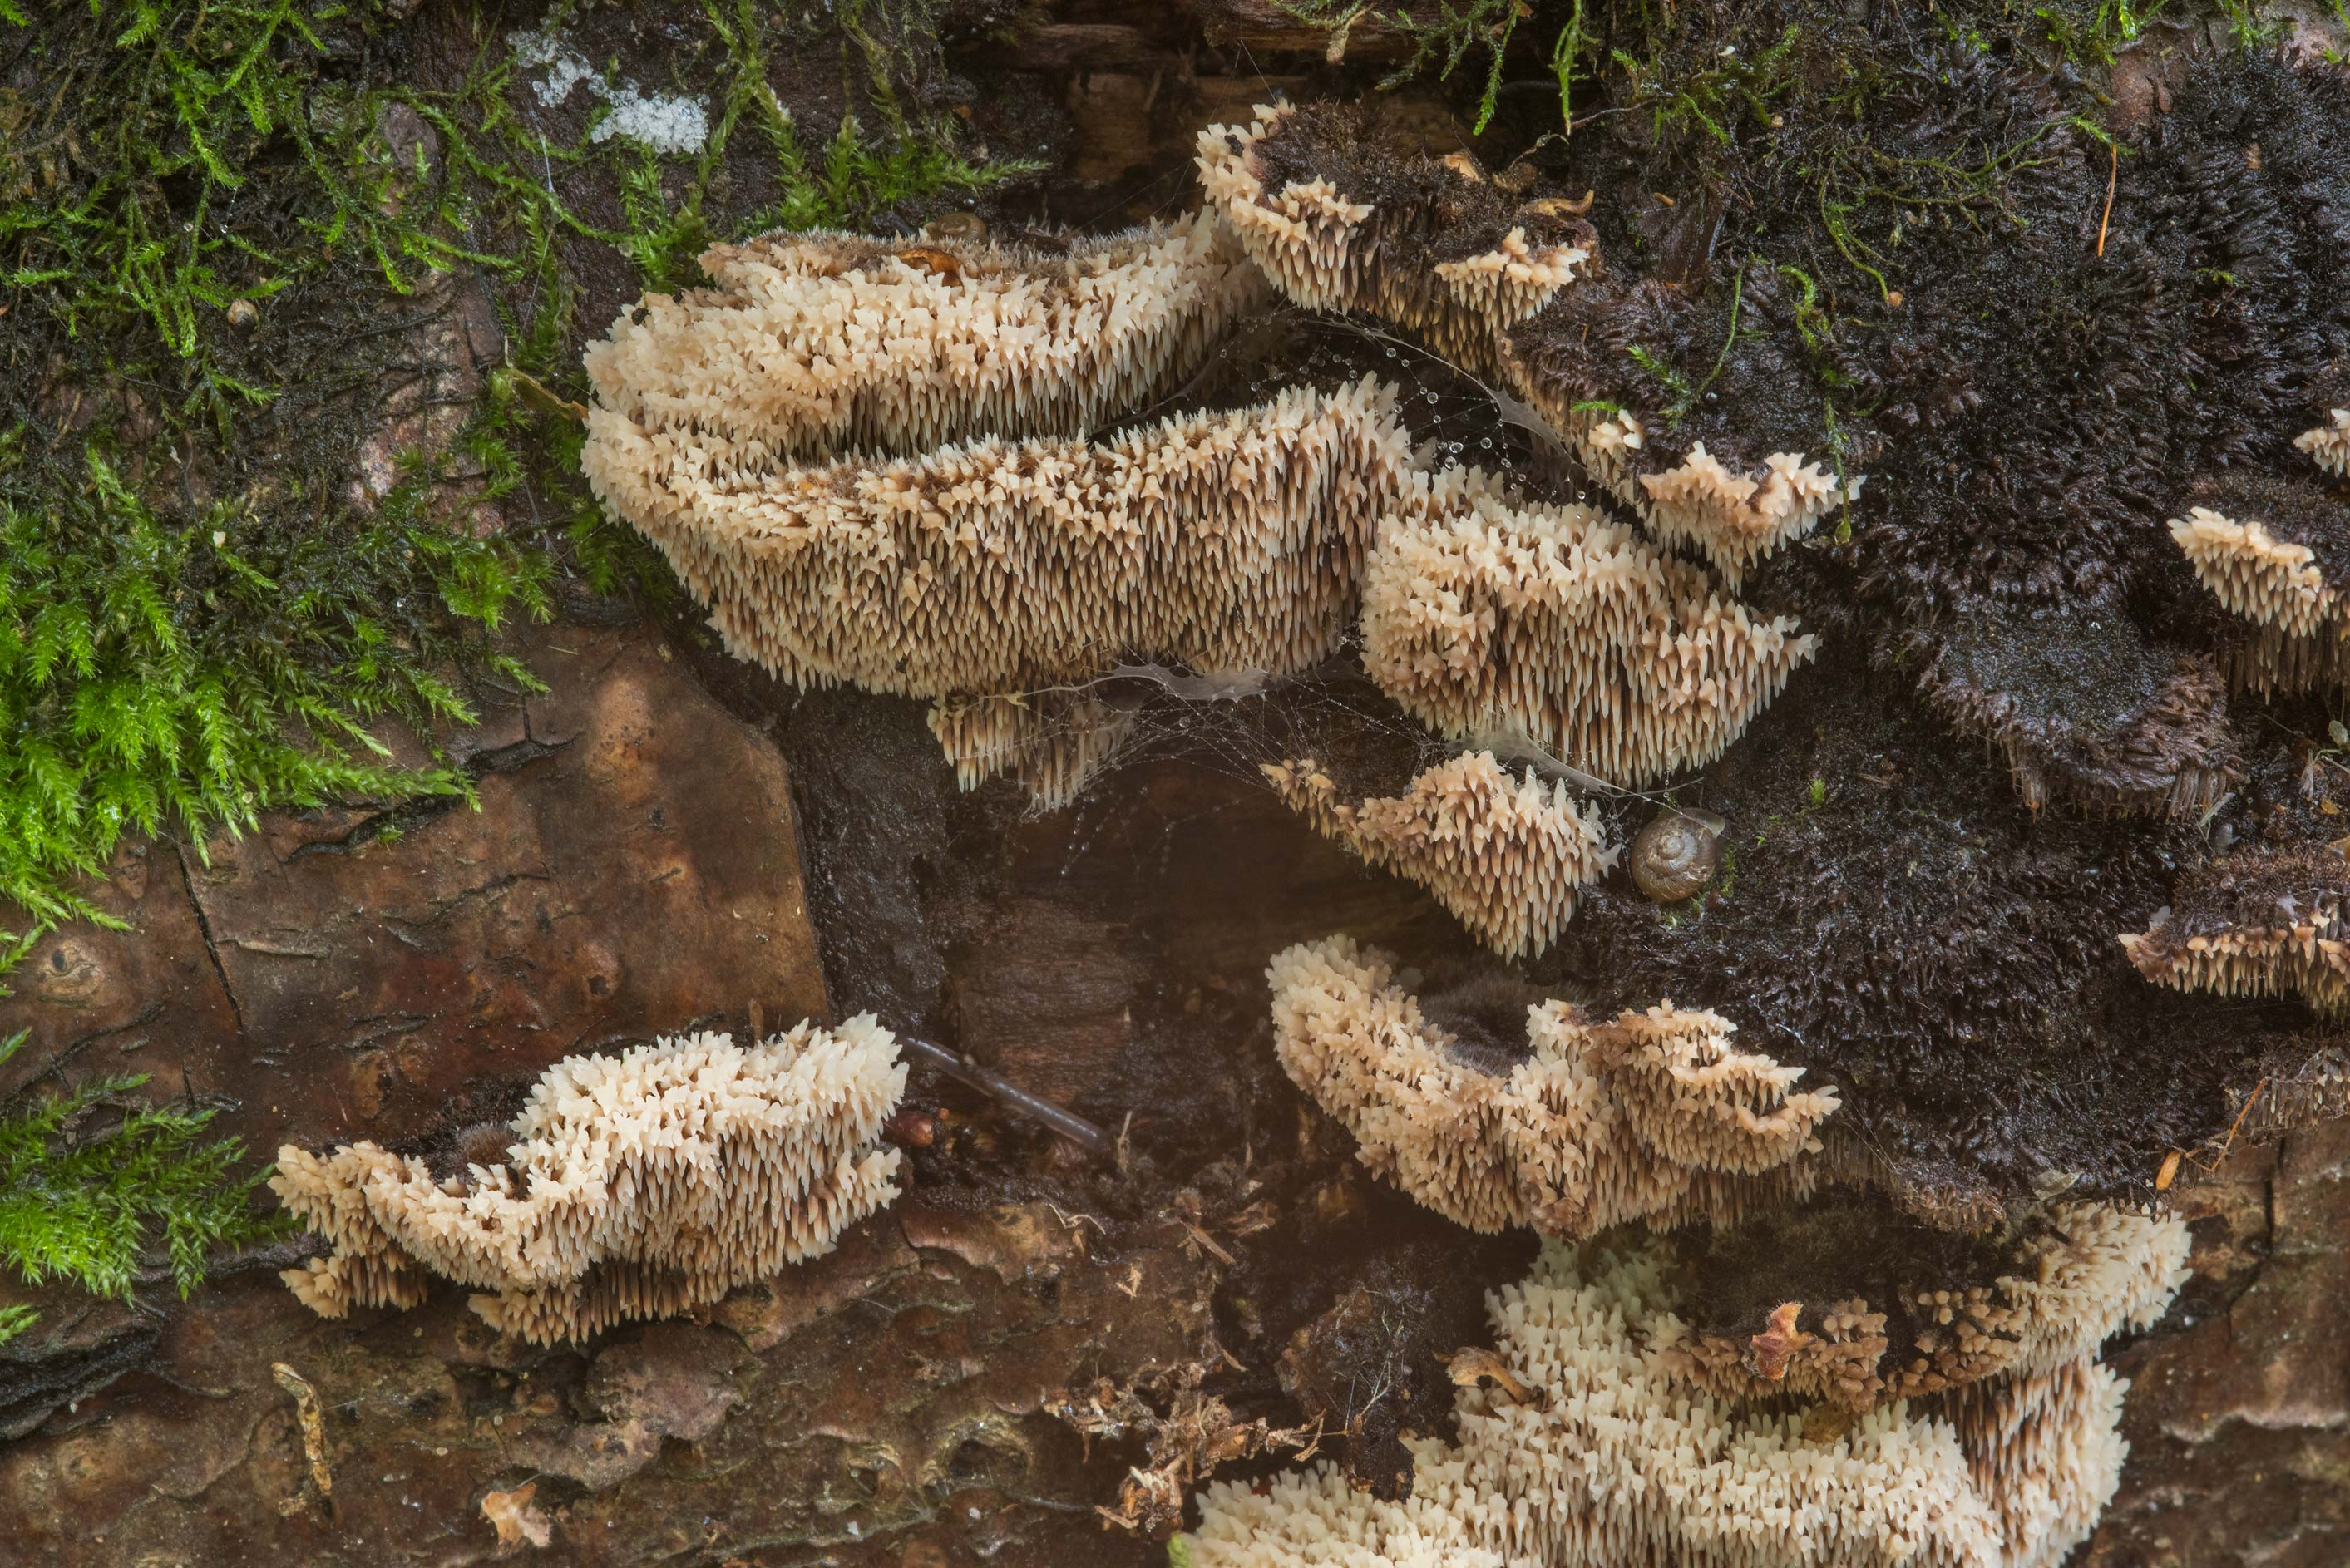 Tooth mushrooms Gloiodon strigosus on a side of a...Nos. West from St.Petersburg, Russia